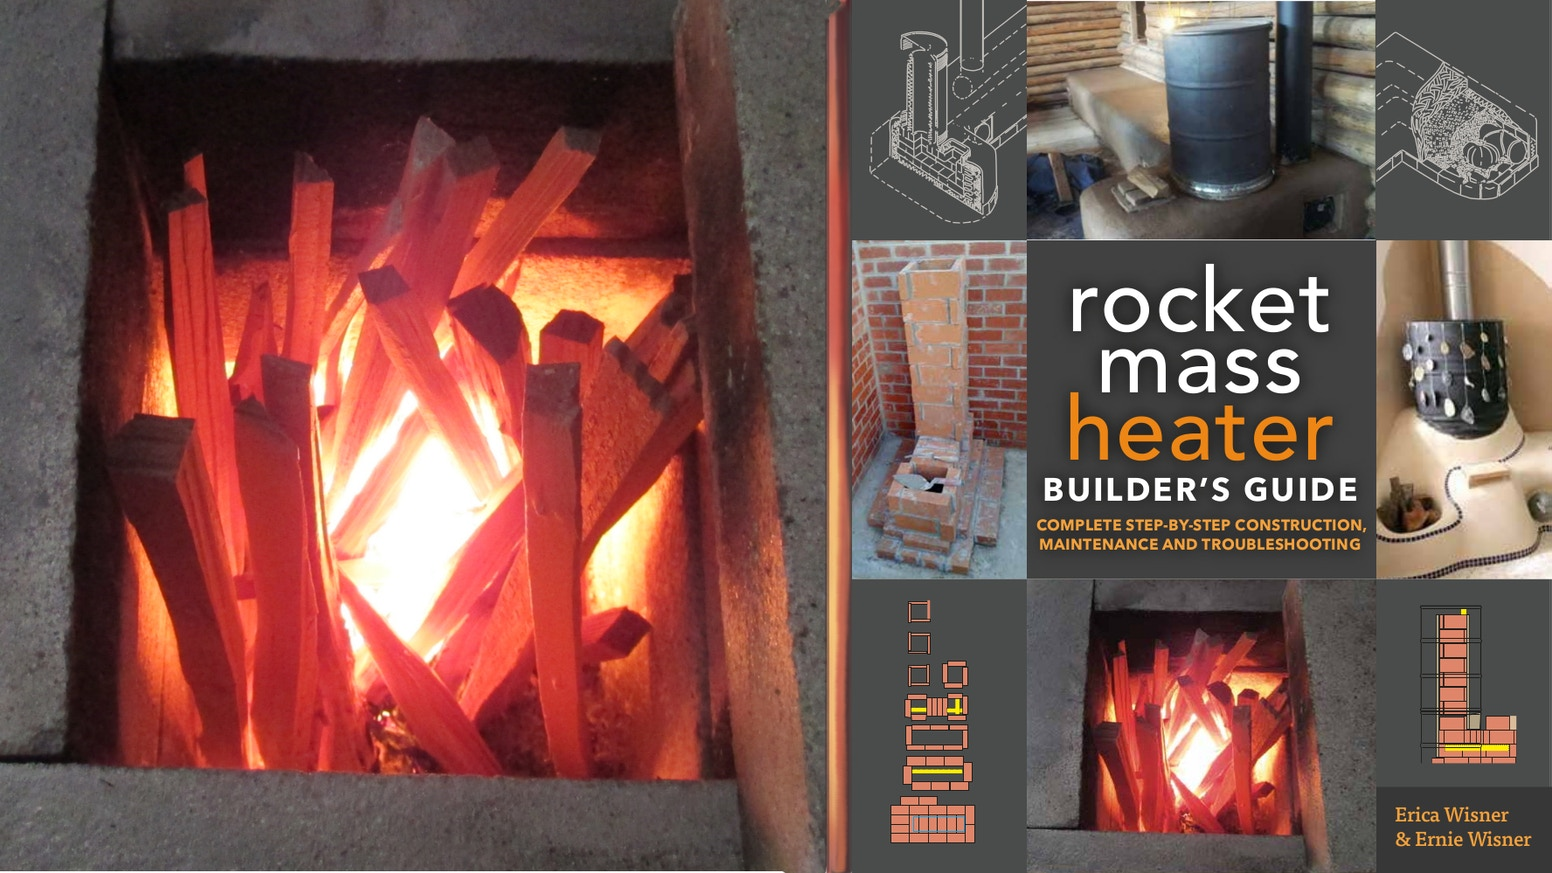 The Rocket Mass Heater Builders Guide By Erica Wisner Kickstarter Stove Diagram This Book Shows How To Build A So You Can Enjoy Overnight